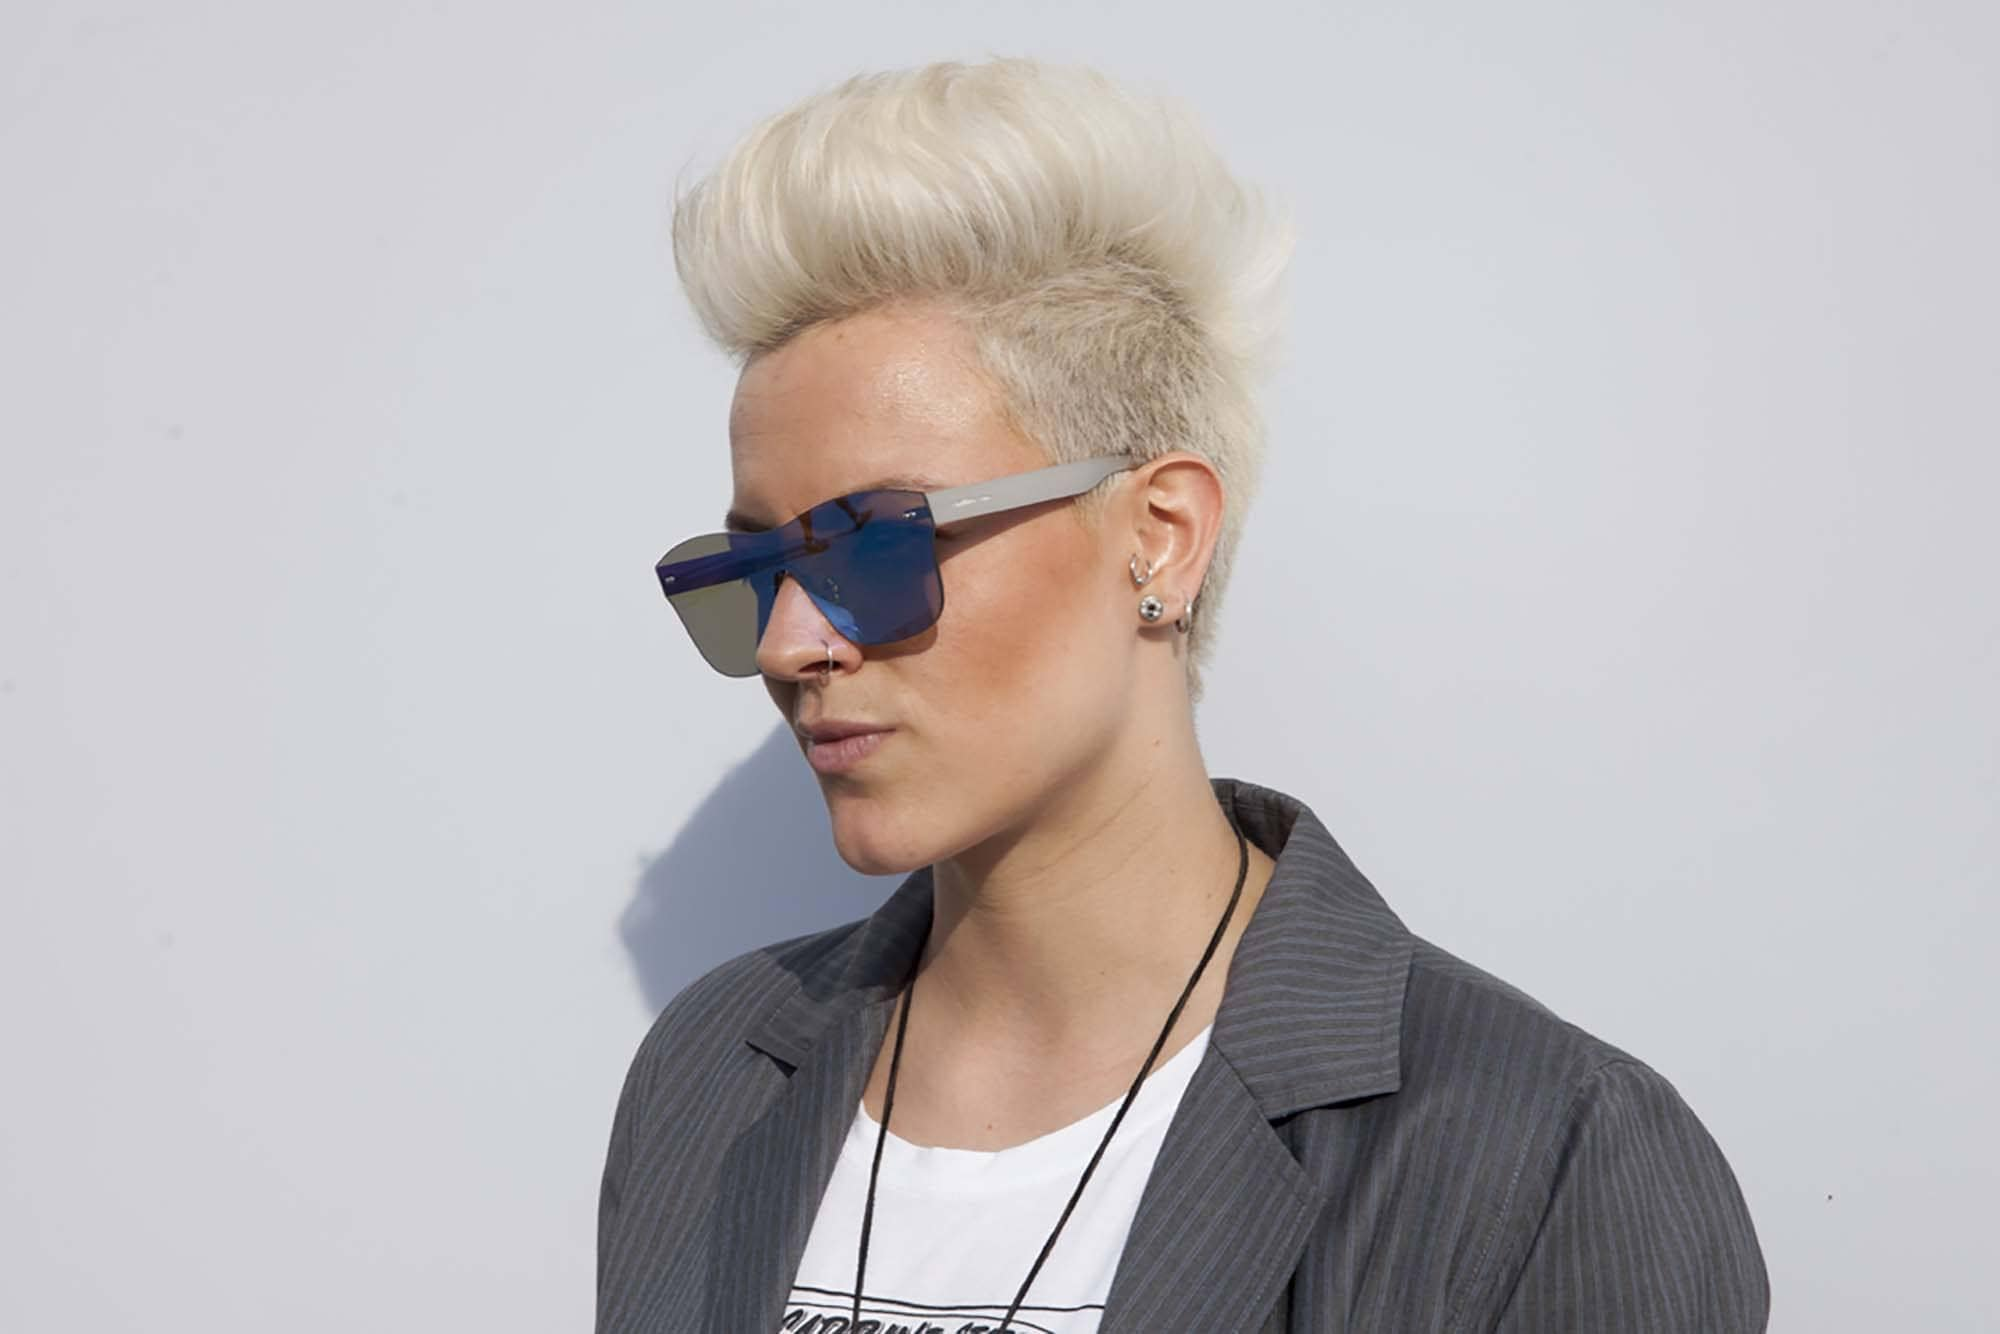 short edgy haircuts like a bleached undercut